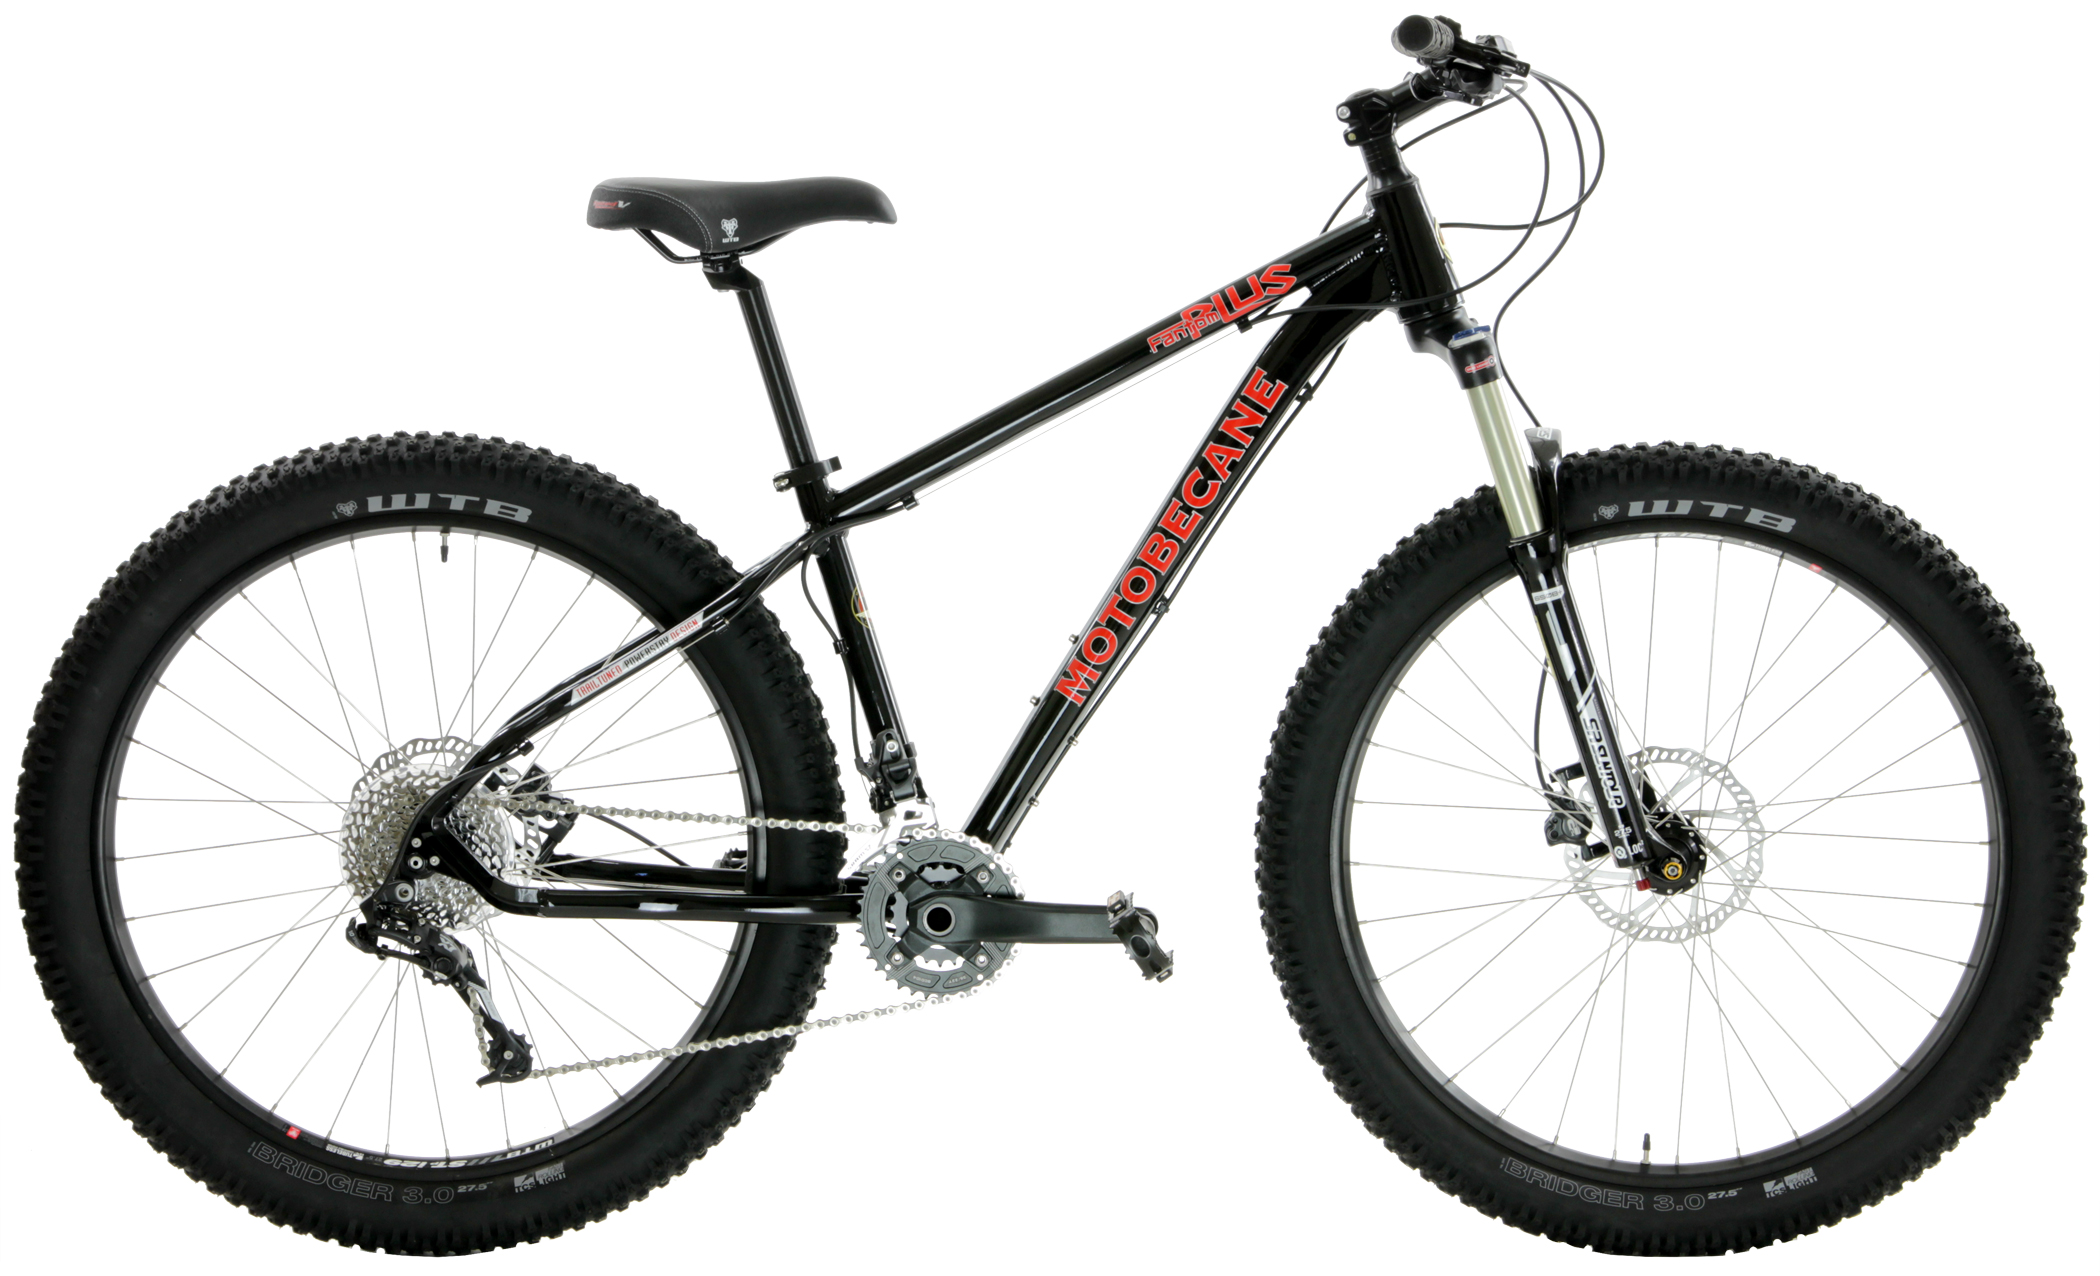 Bikes Motobecane Fantom 27.5 Plus X7 2x10 speeds Disc Brake Mountain Bike Image